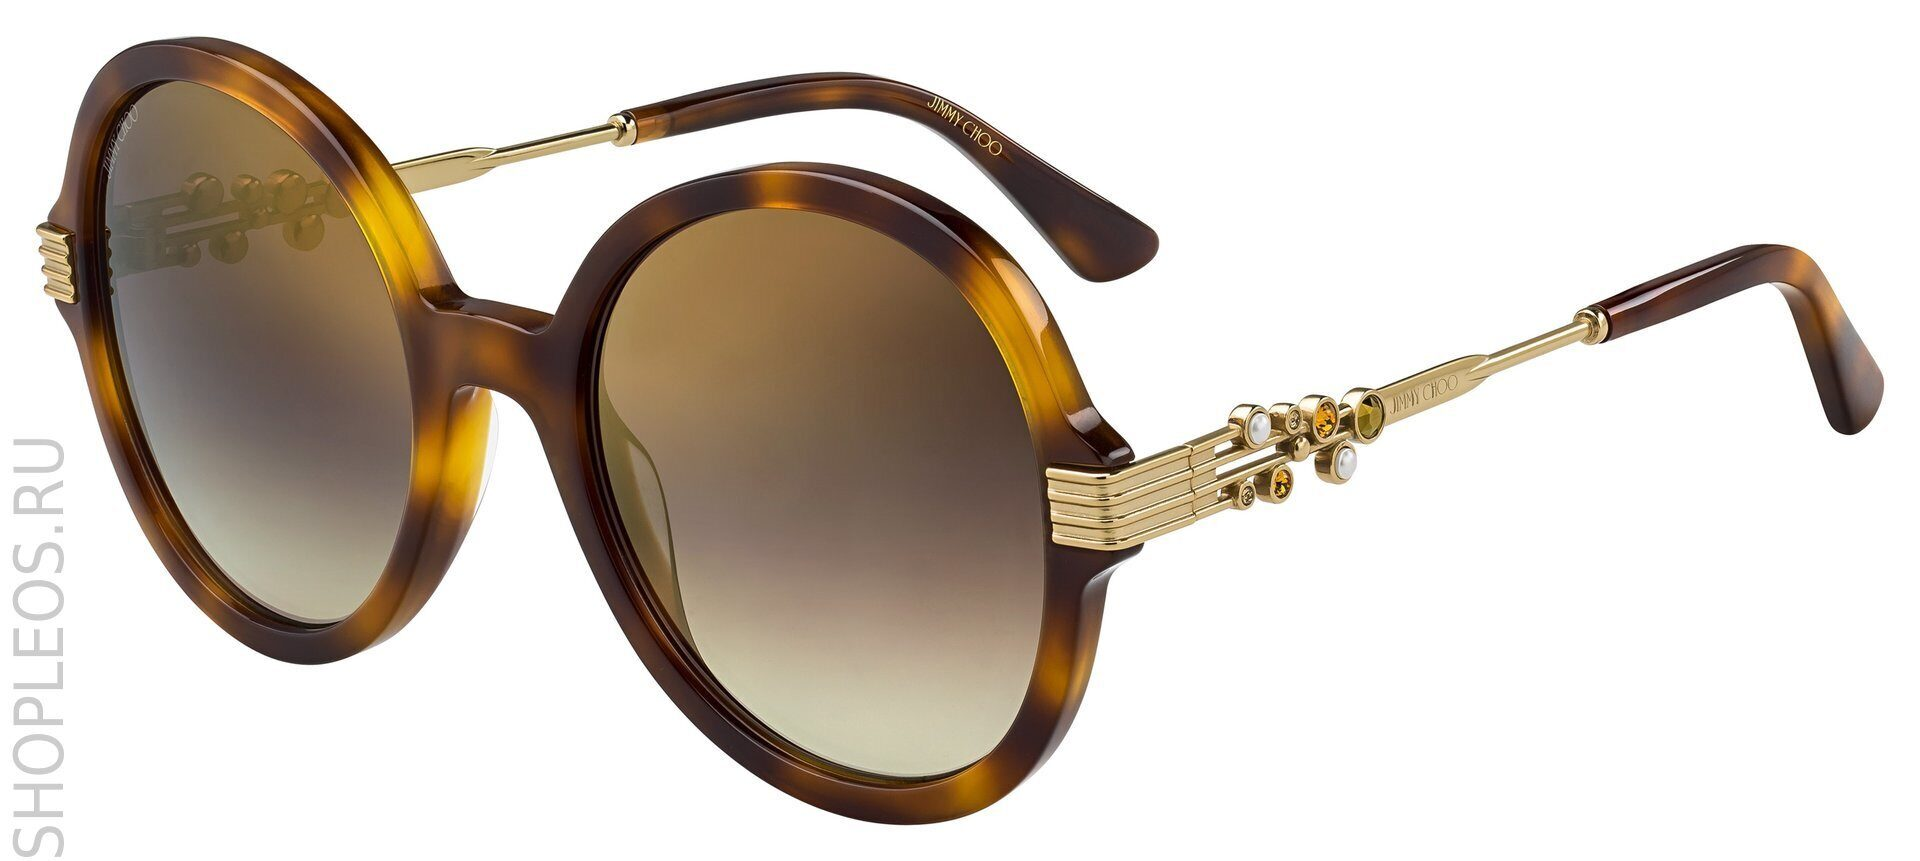 JIMMY CHOO WOMAN ADRIA/G/S 086